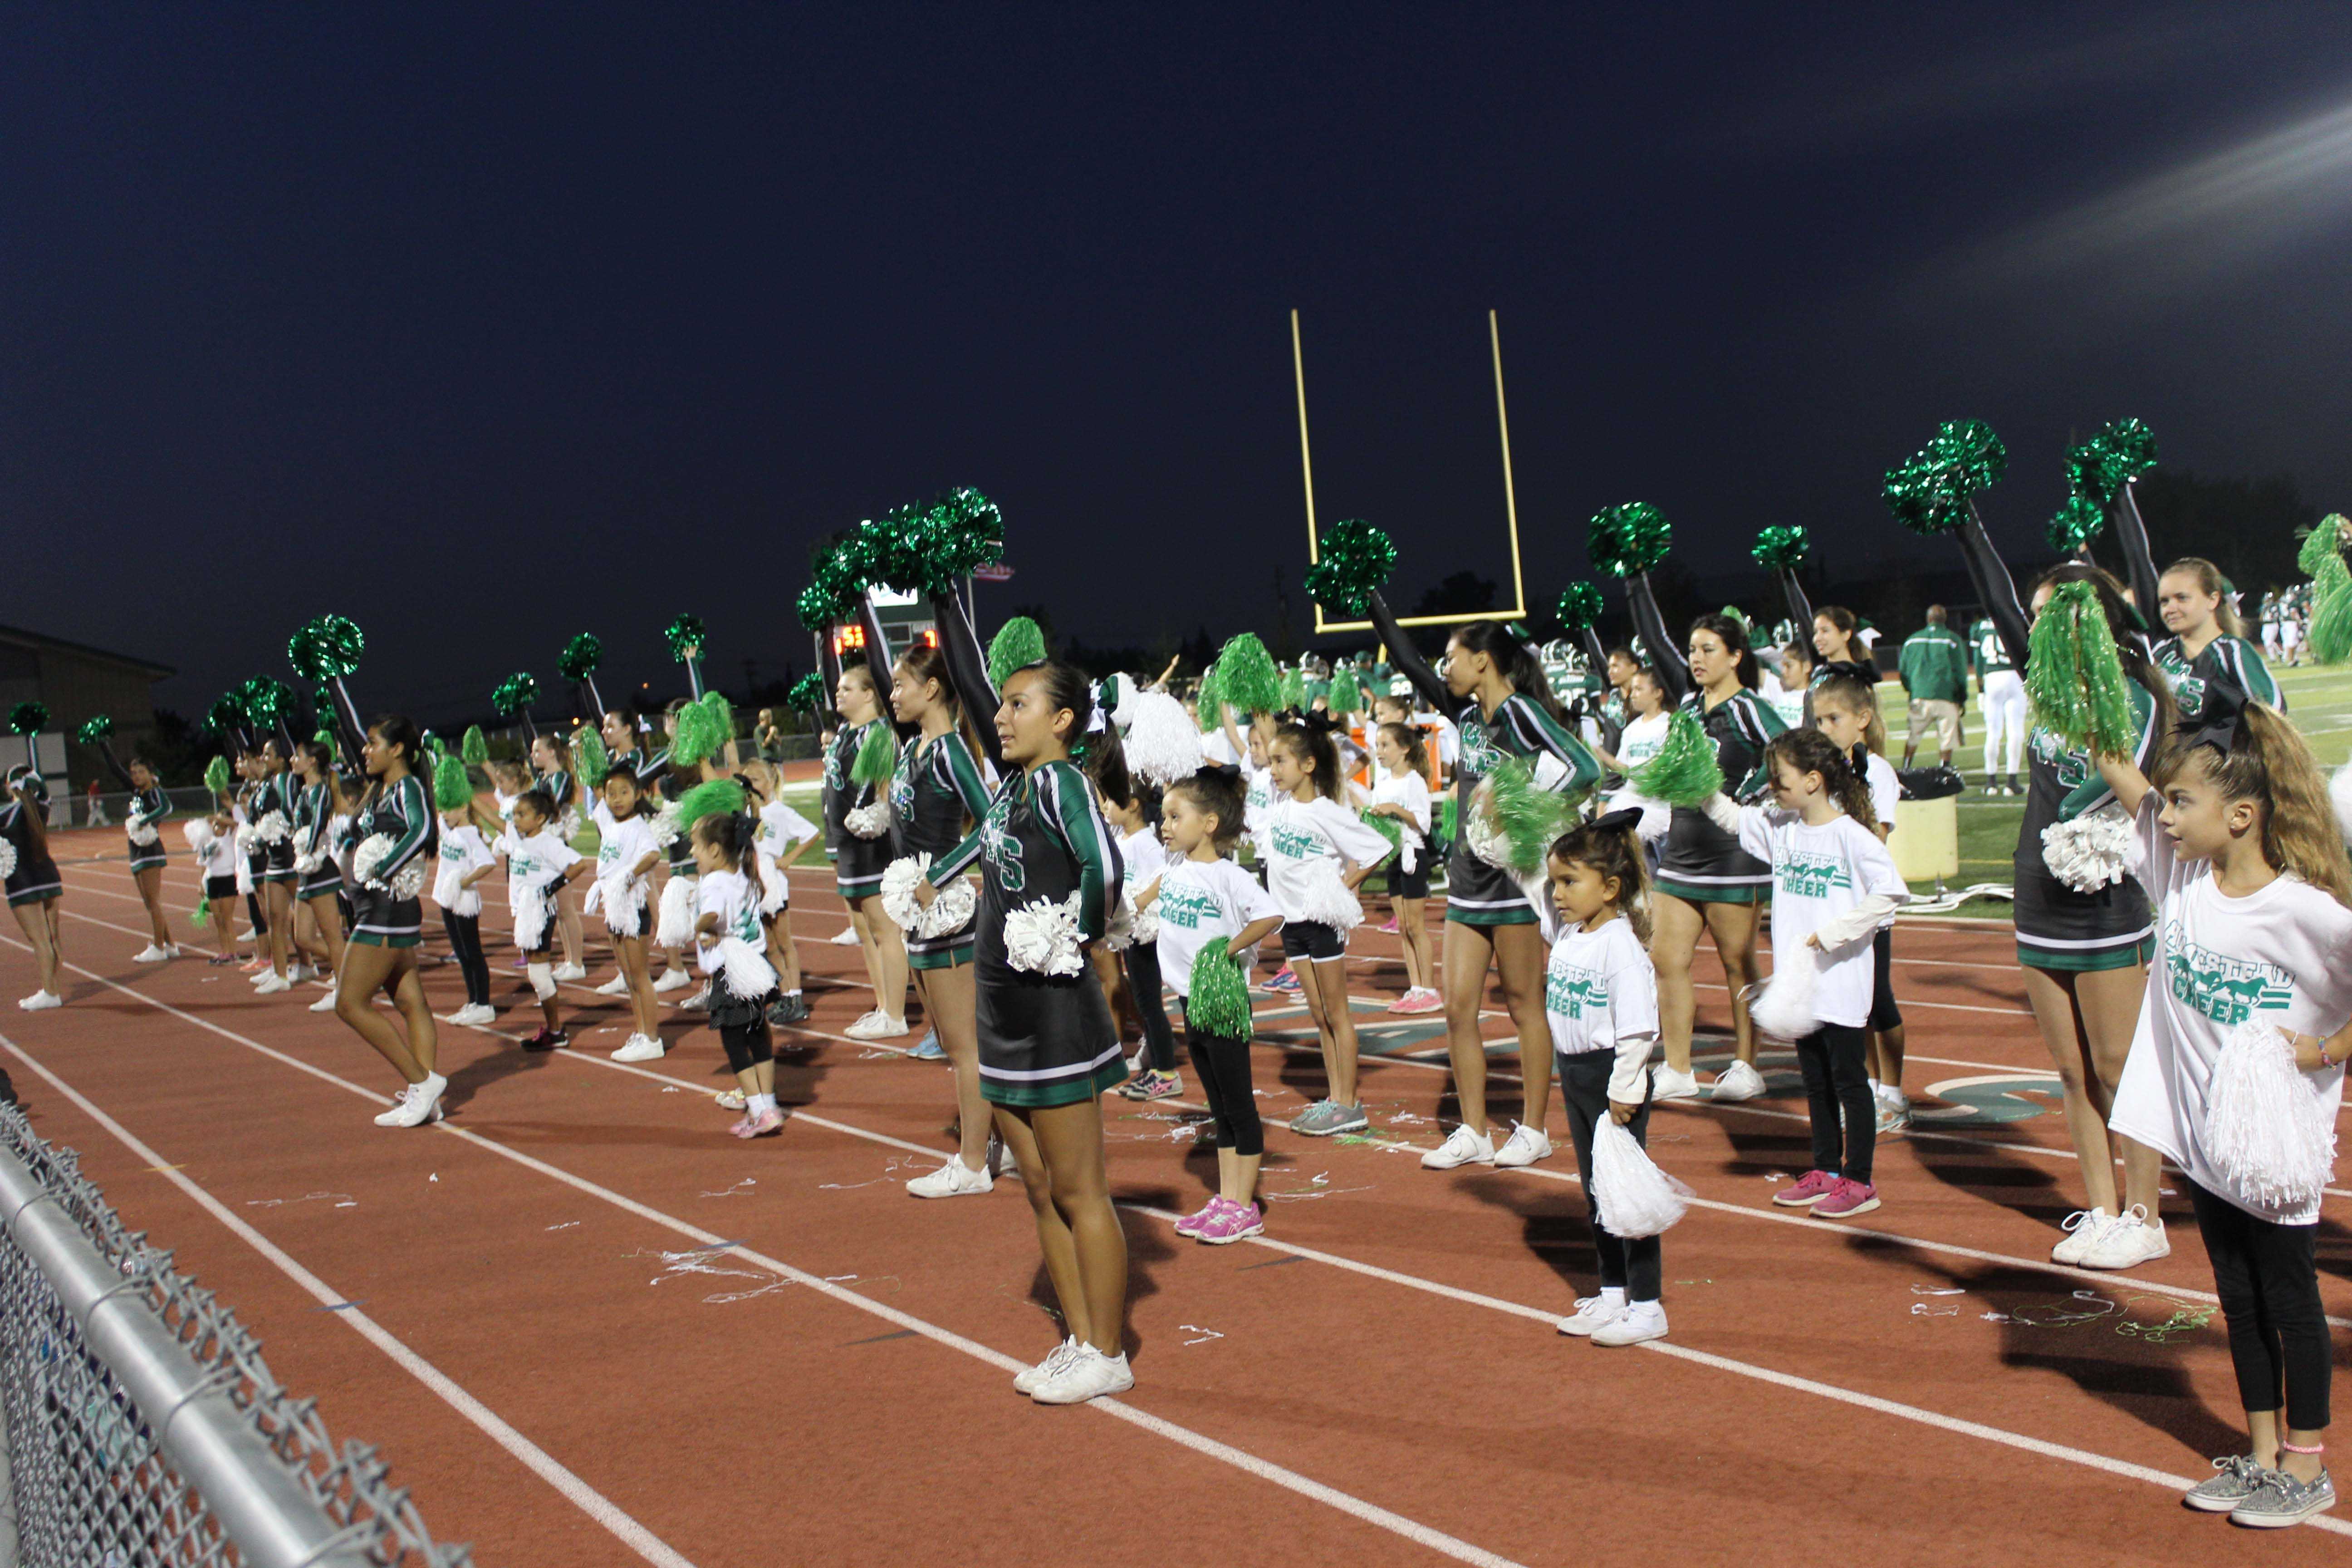 Campers join the Cheer team in leading the crowd at the Homestead vs. Leland football game last Friday.